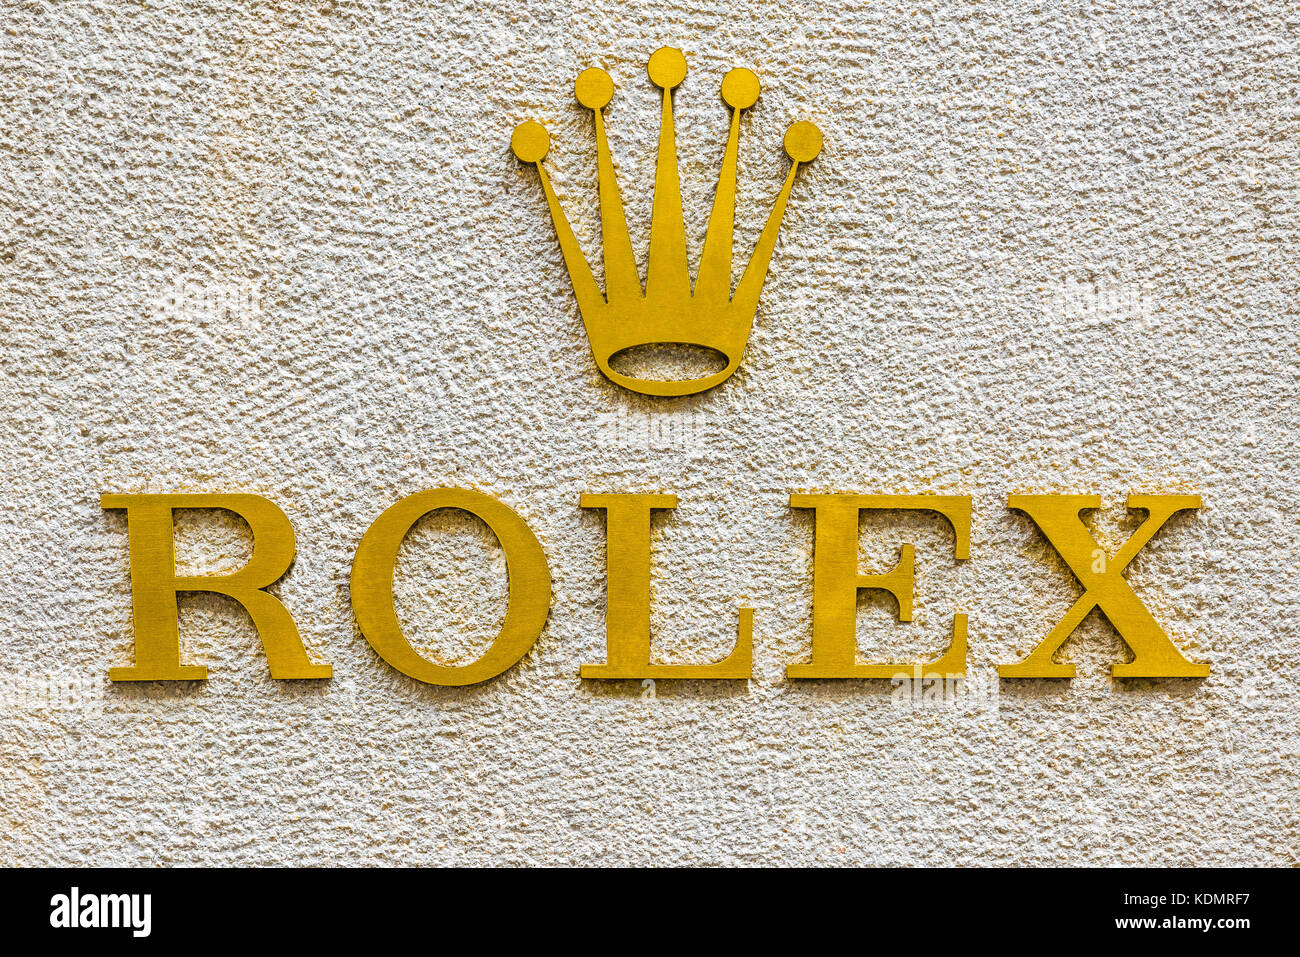 Milan, Italy - August 10, 2017: Rolex logo at the entrance to a store in an exclusive area of Milan (via Montenapoleone). - Stock Image